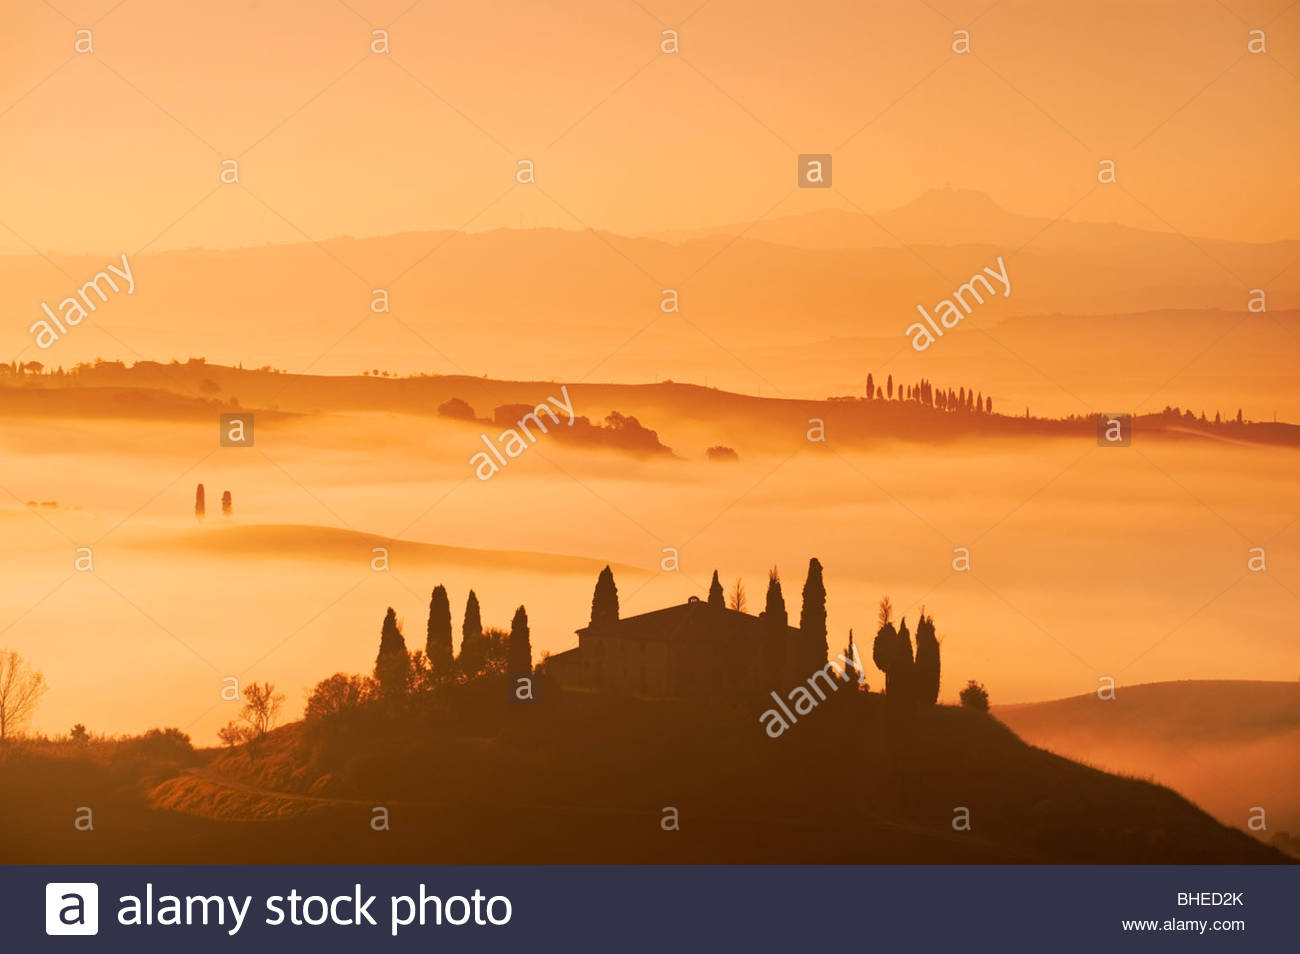 Early morning mist surrounds the farmhouse at Belvedere, near San Quirico D'Orcia, Val D'Orcia, Tuscany, - Stock Image